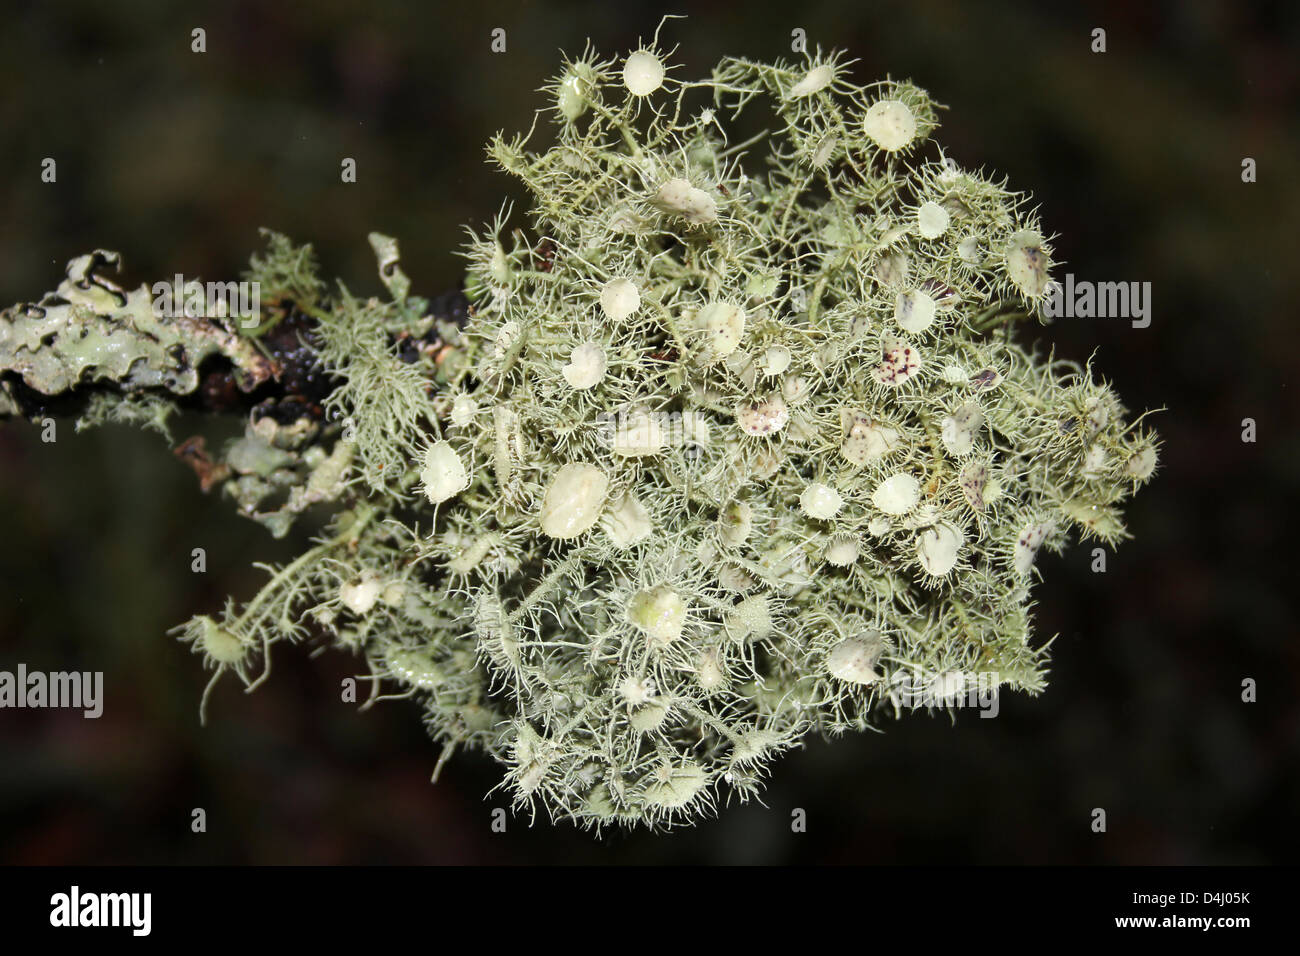 Witches' Whiskers Lichen Usnea florida – the apothecium show branched eyelash cilia - Stock Image